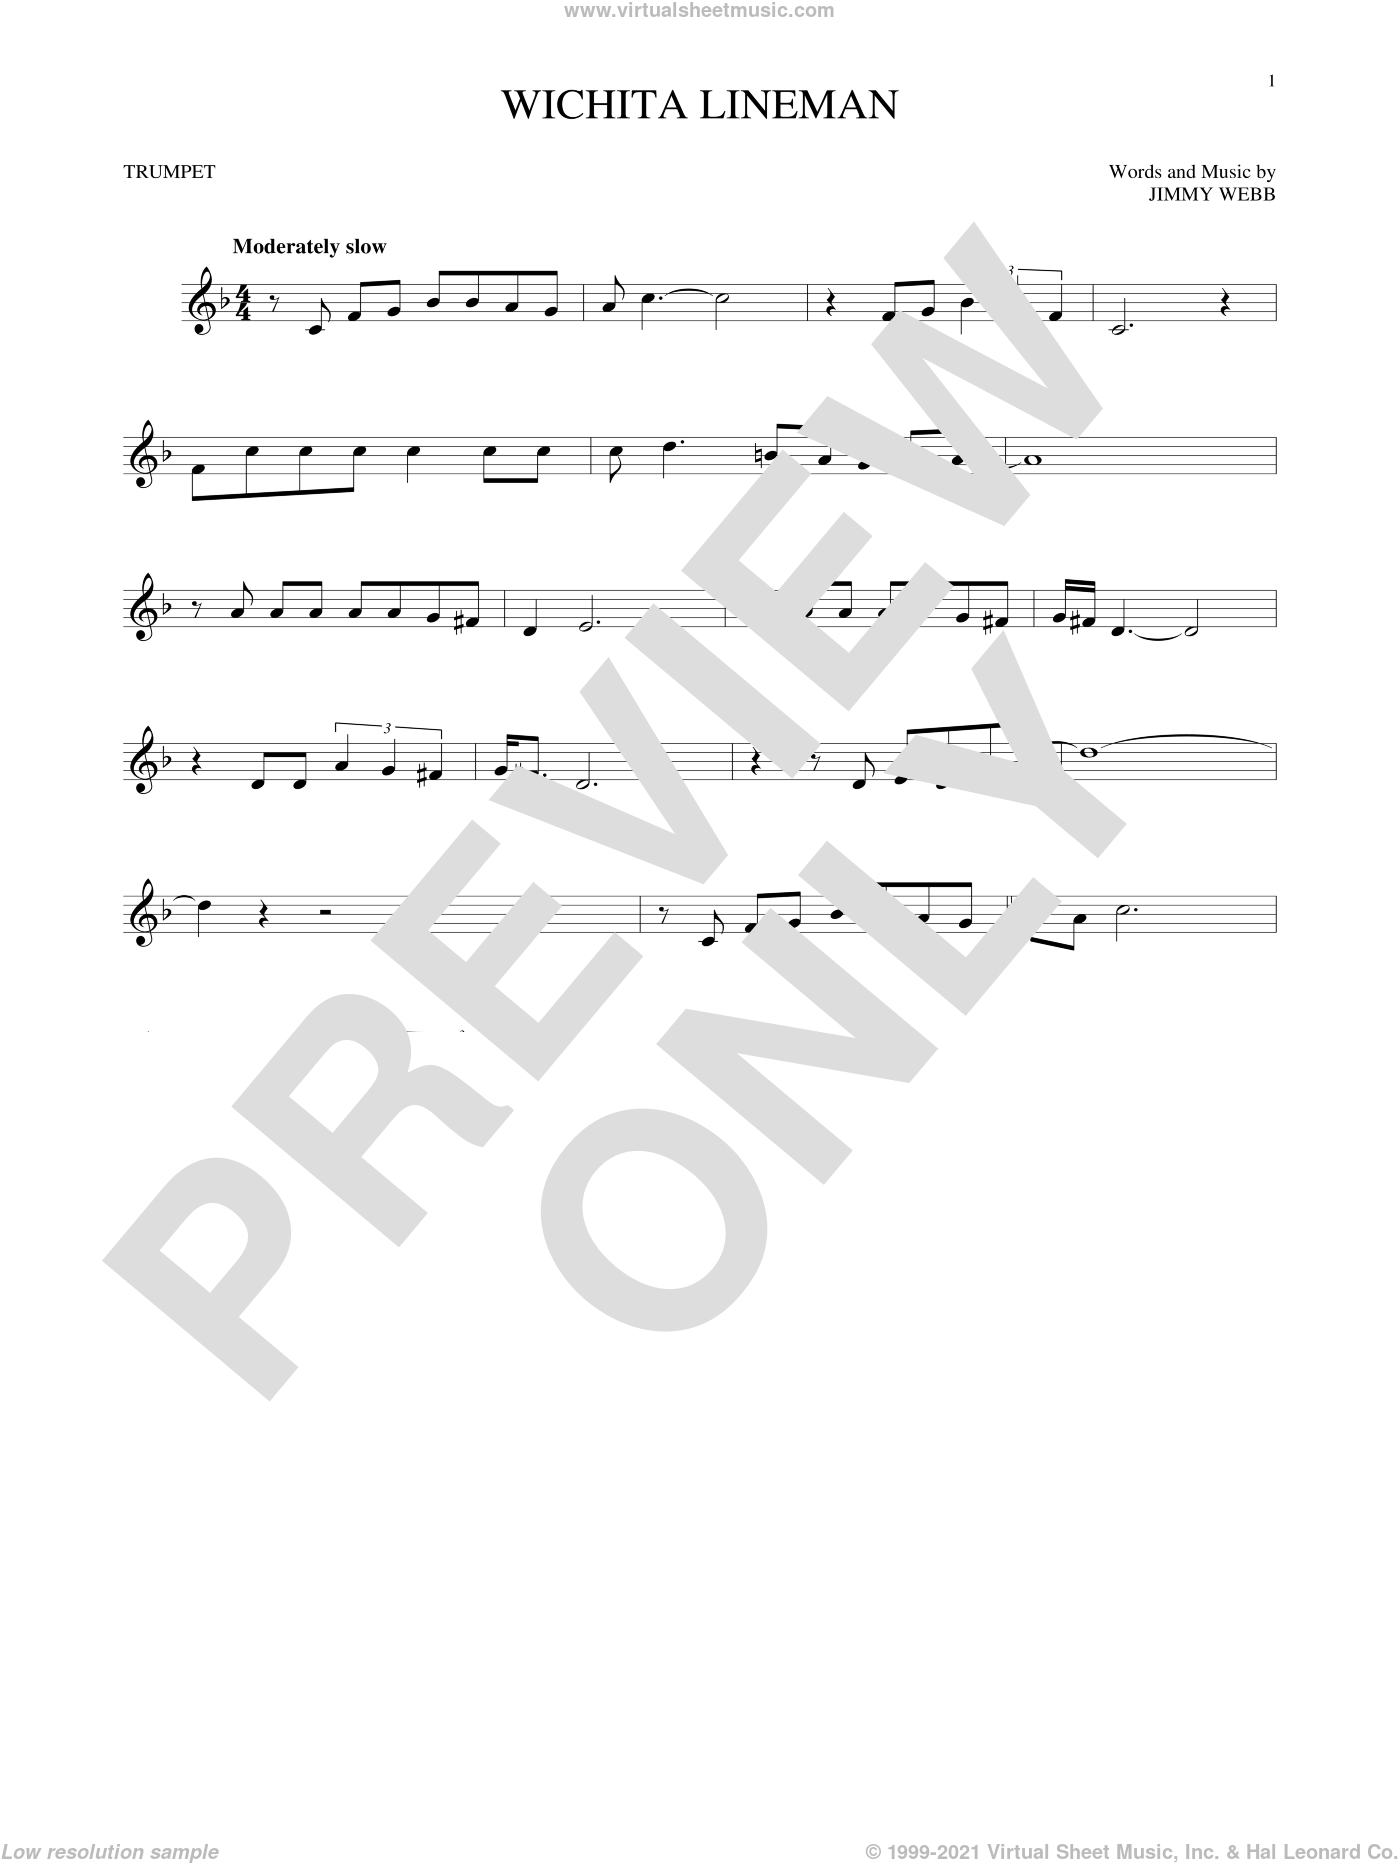 Wichita Lineman sheet music for trumpet solo by Glen Campbell and Jimmy Webb, intermediate